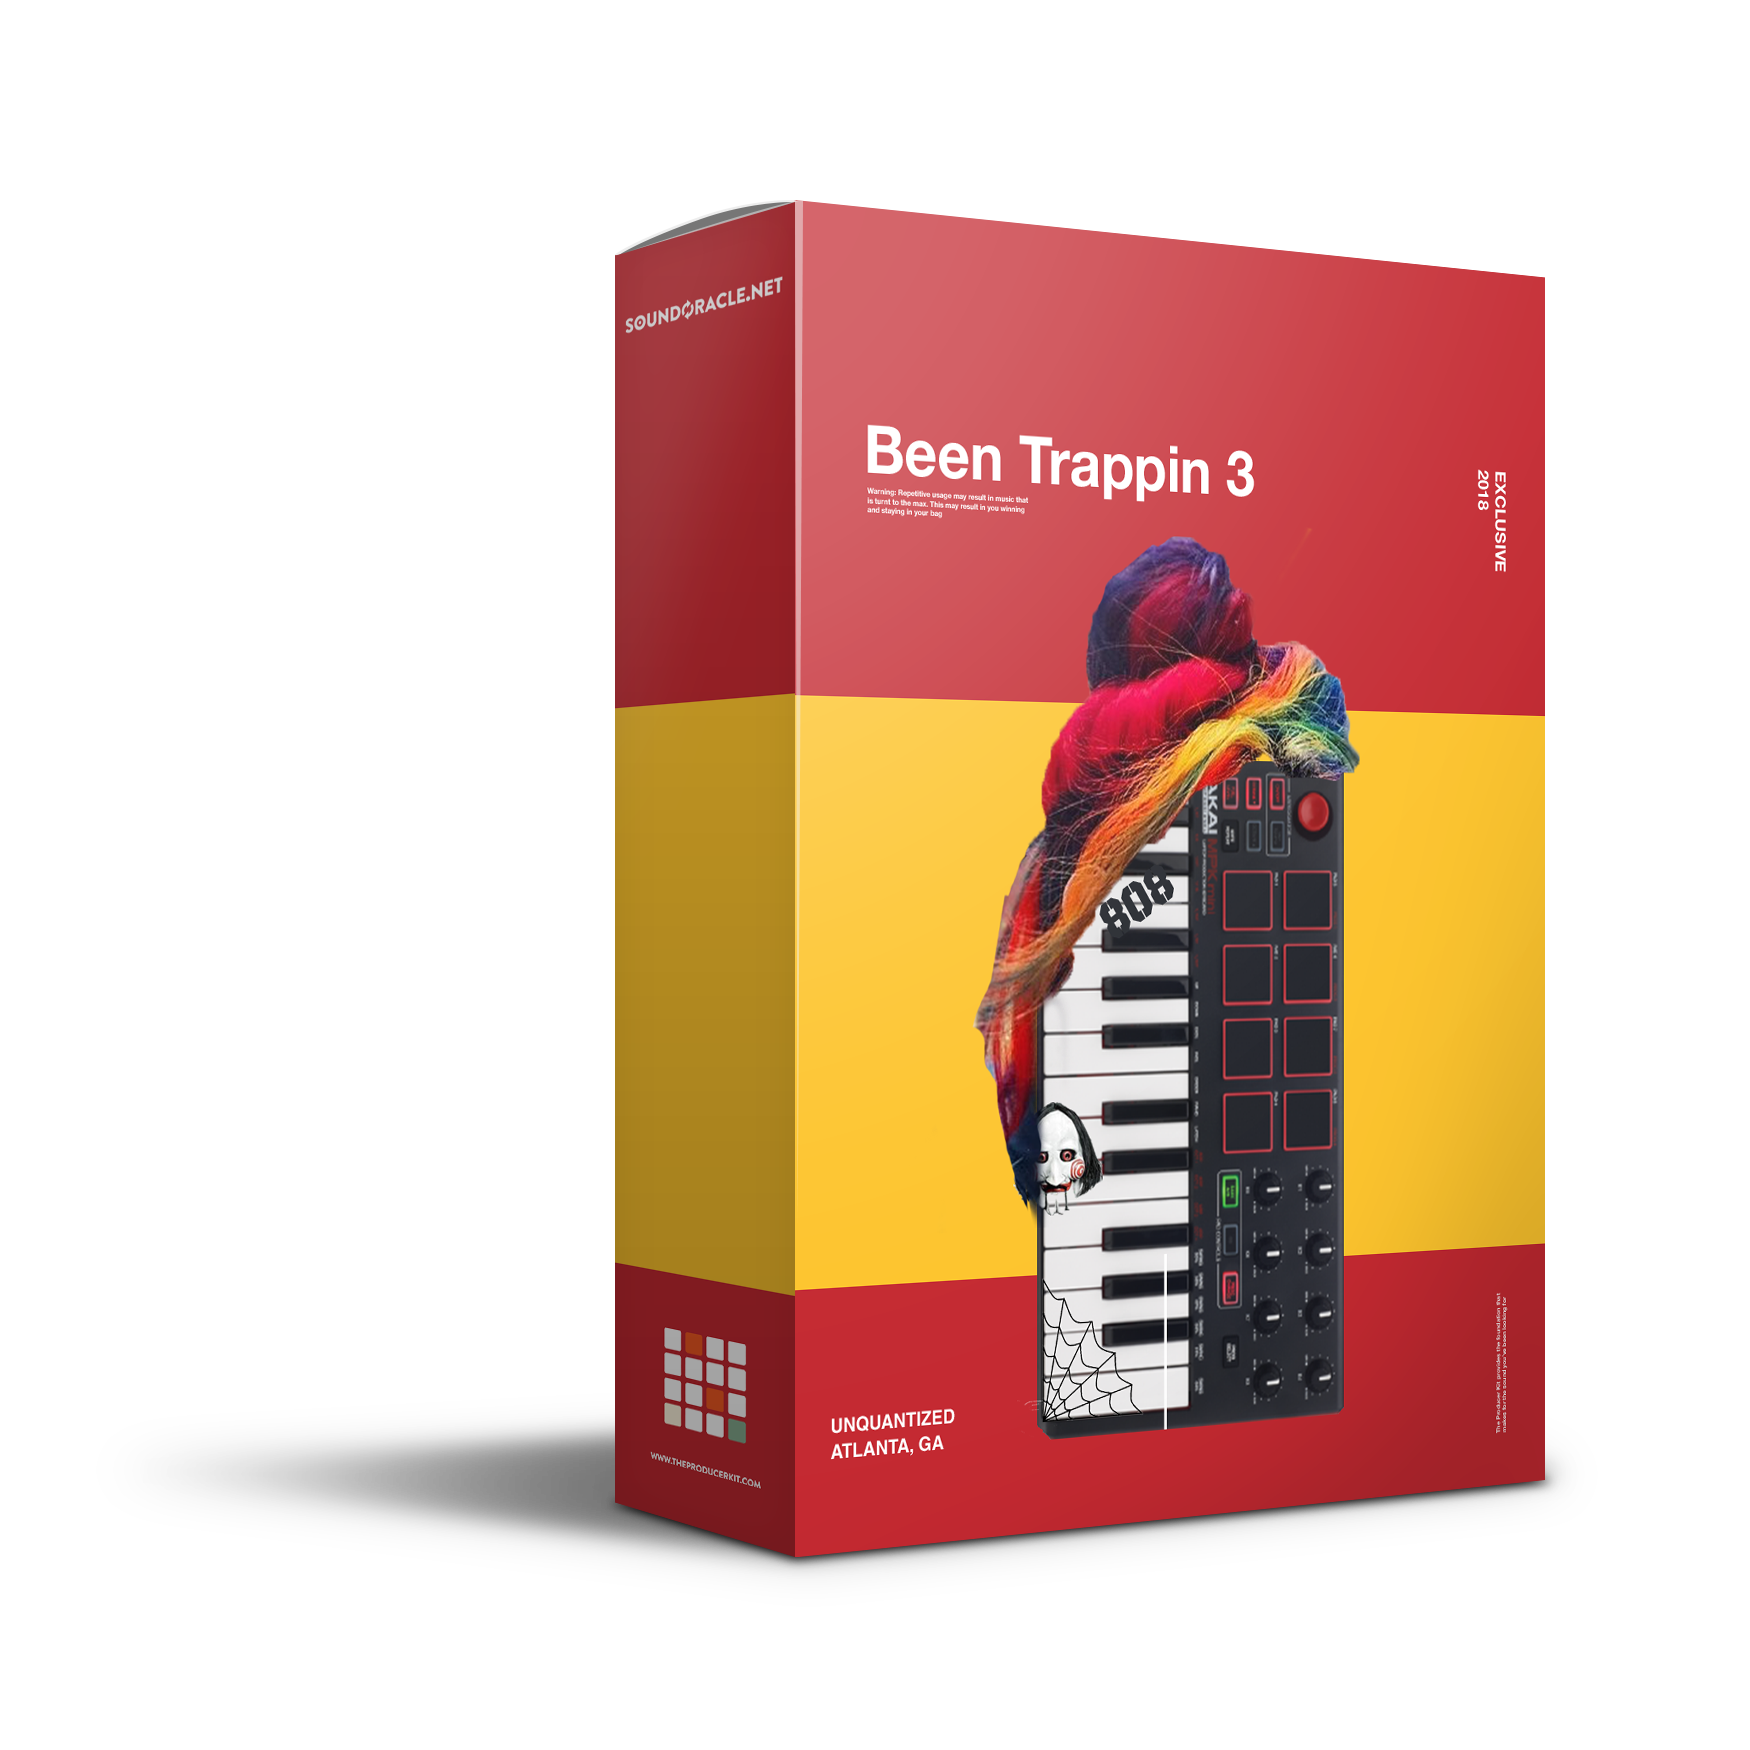 Been Trappin, Been Trappin Series, Been Trappin 3, BEEN TRAPPIN III, Trap Boomin, Trap, Trap Drums, Trap Sample Kit, Trap Sounds, Drums, 808, Perc, Percussion Loops, Modern Trap Drums, Drum Sounds, Drum Pack, Drum Kit, Loops, Melody Loops, Royalty Free, SoundOracle, Triza, The Producer Kit, Unquantized, Unquantized Podcast, Music Producers, Producers, Beats, Beatmakers, Beat Making, Sounds, Sound Kits, Sample Kit, Sound Libraries, SoundOracle Sound Kits, Ableton, Top 40, Pop, Hip Hop, Hip-Hop